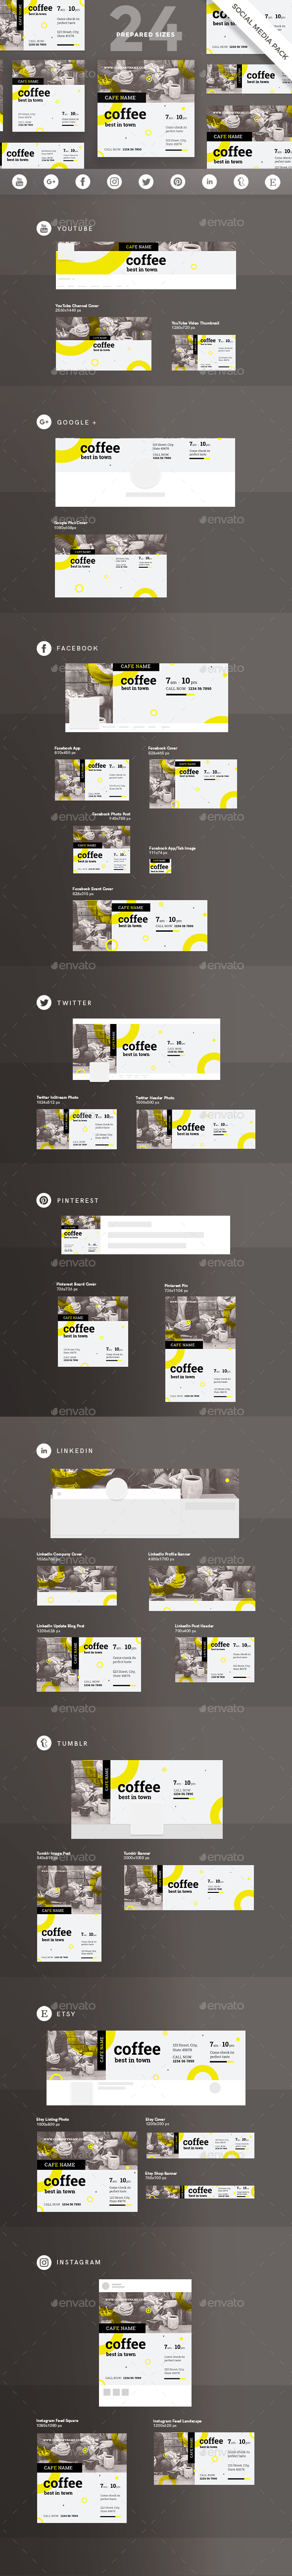 Coffee Shop Social Media Pack - Miscellaneous Social Media